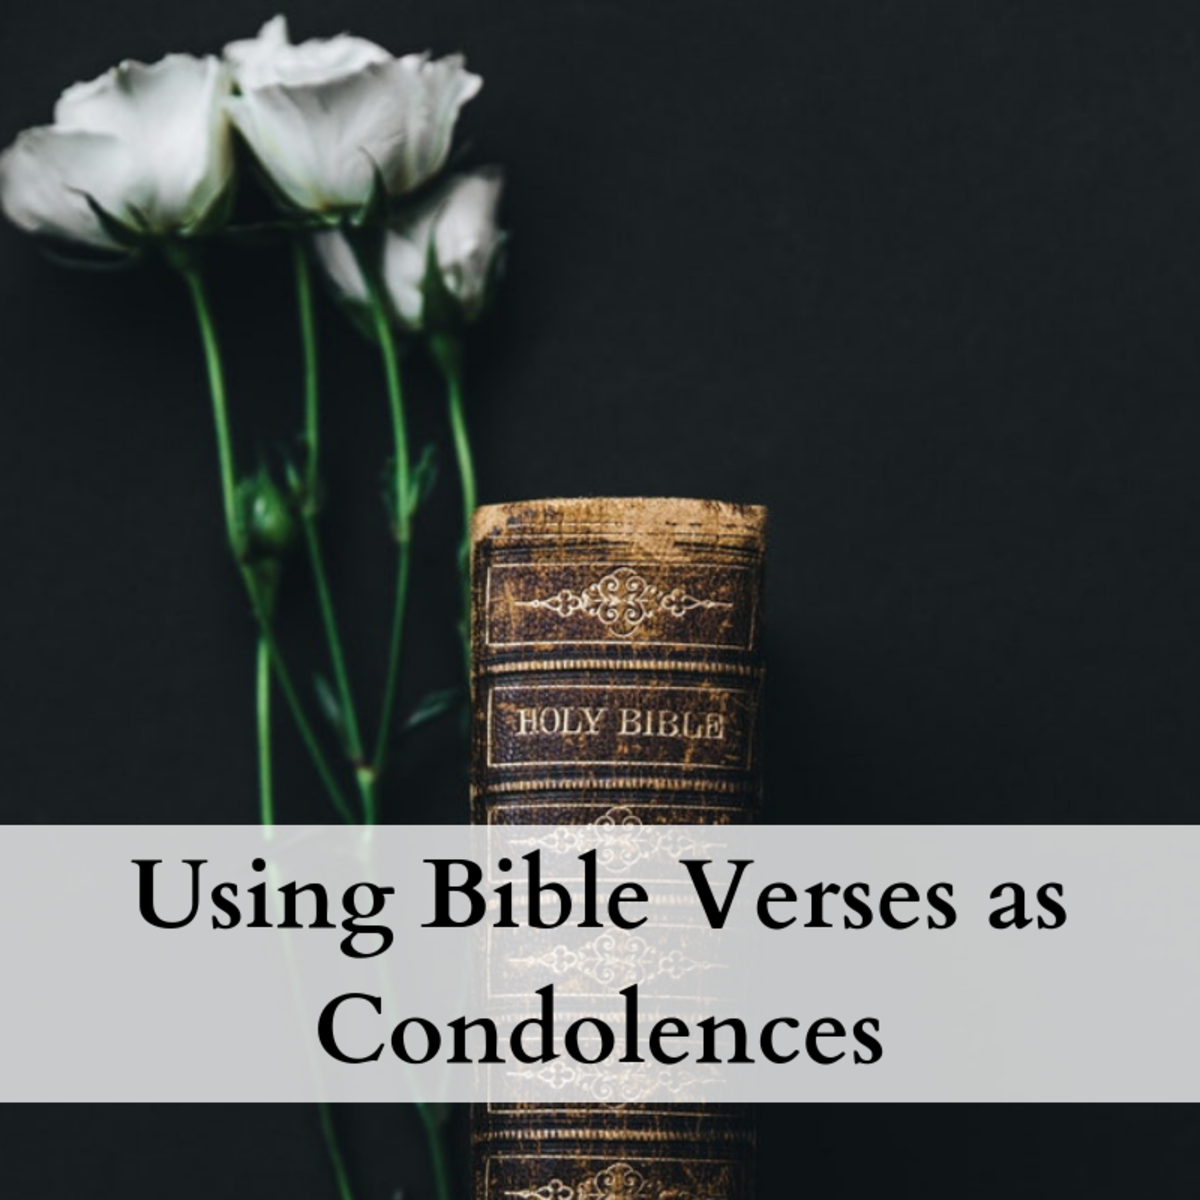 Sympathy Quotes Bible: Bible Verses To Use As Condolences And Sympathy Messages